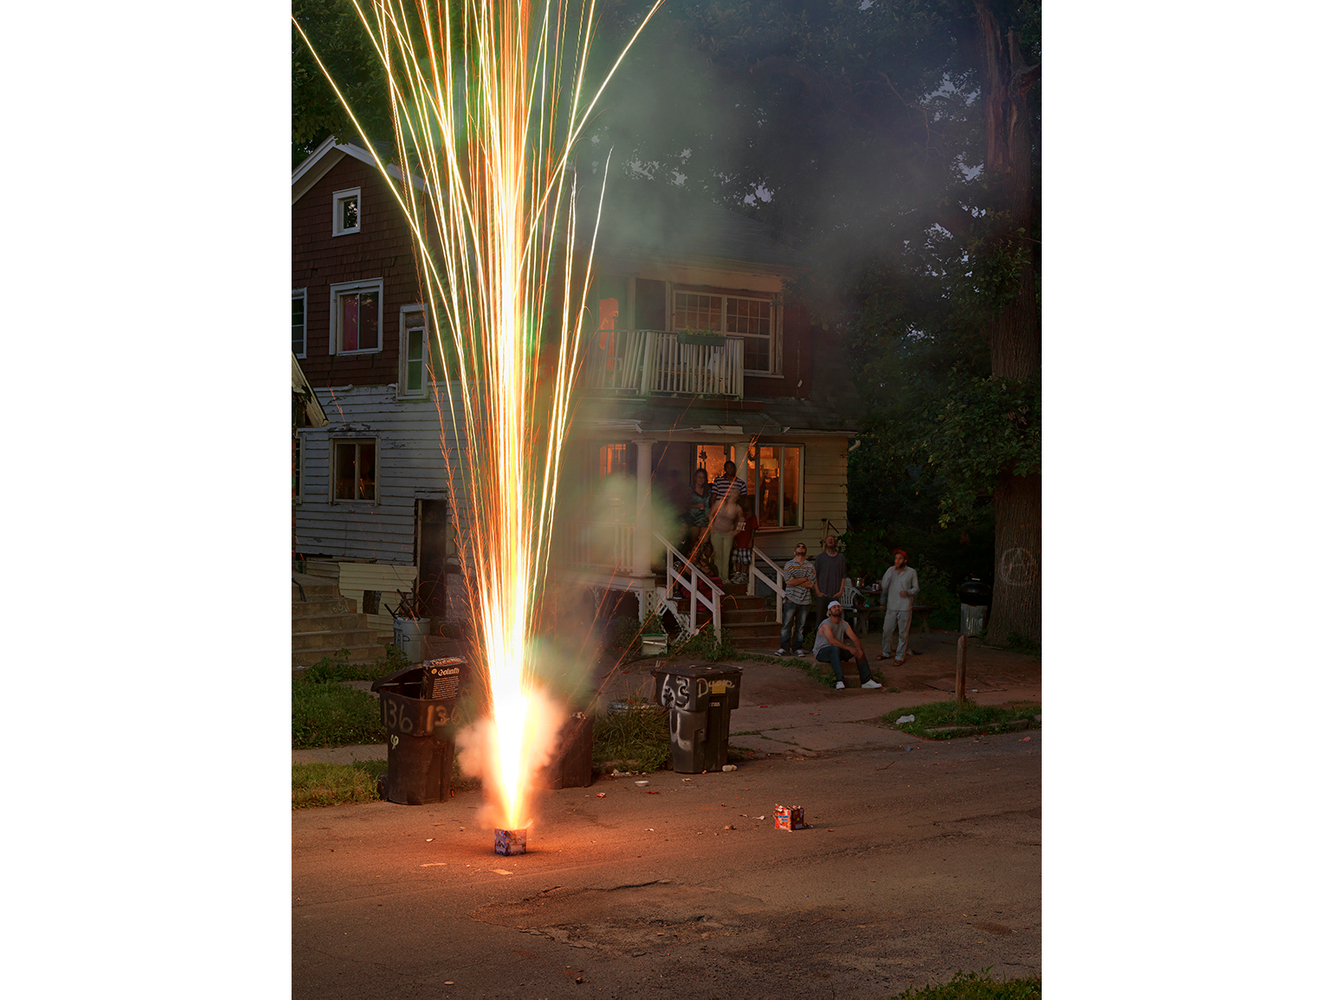 Neighborhood Fireworks on the 4th of July, Goldengate Street, Detroit 2014